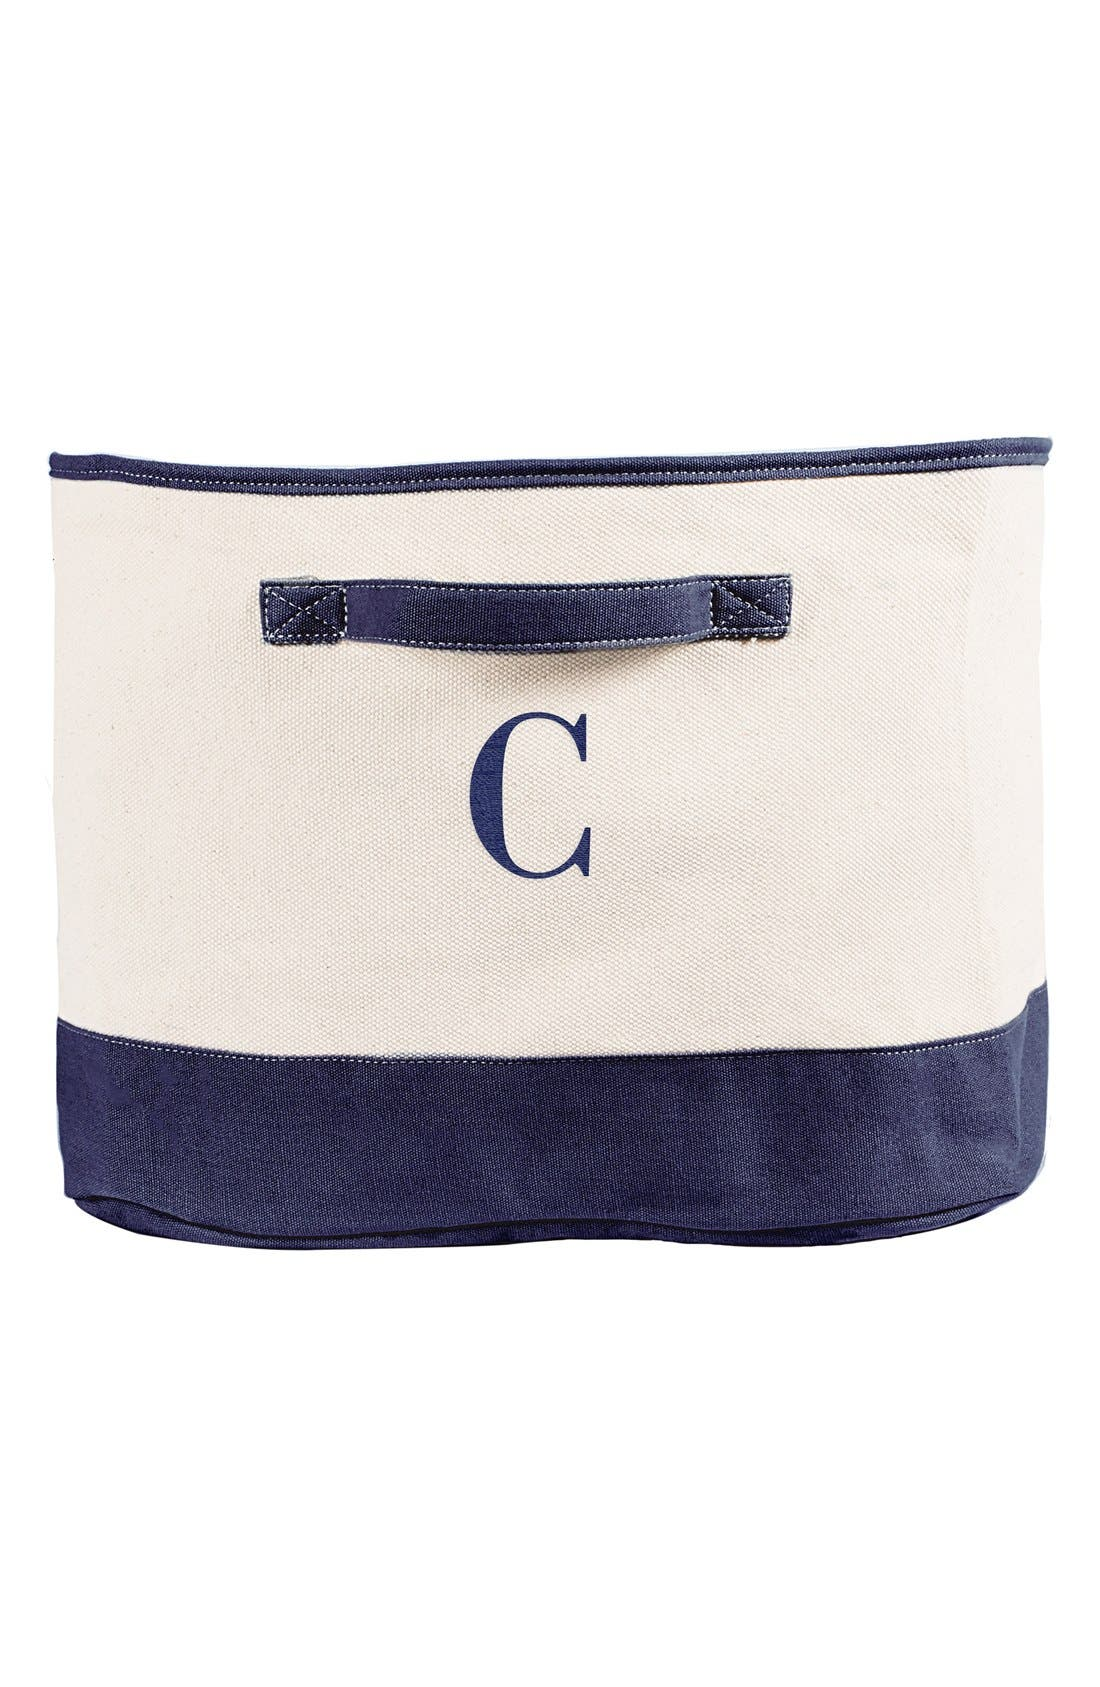 Alternate Image 1 Selected - Cathy's Concepts Monogram Square Canvas Bin